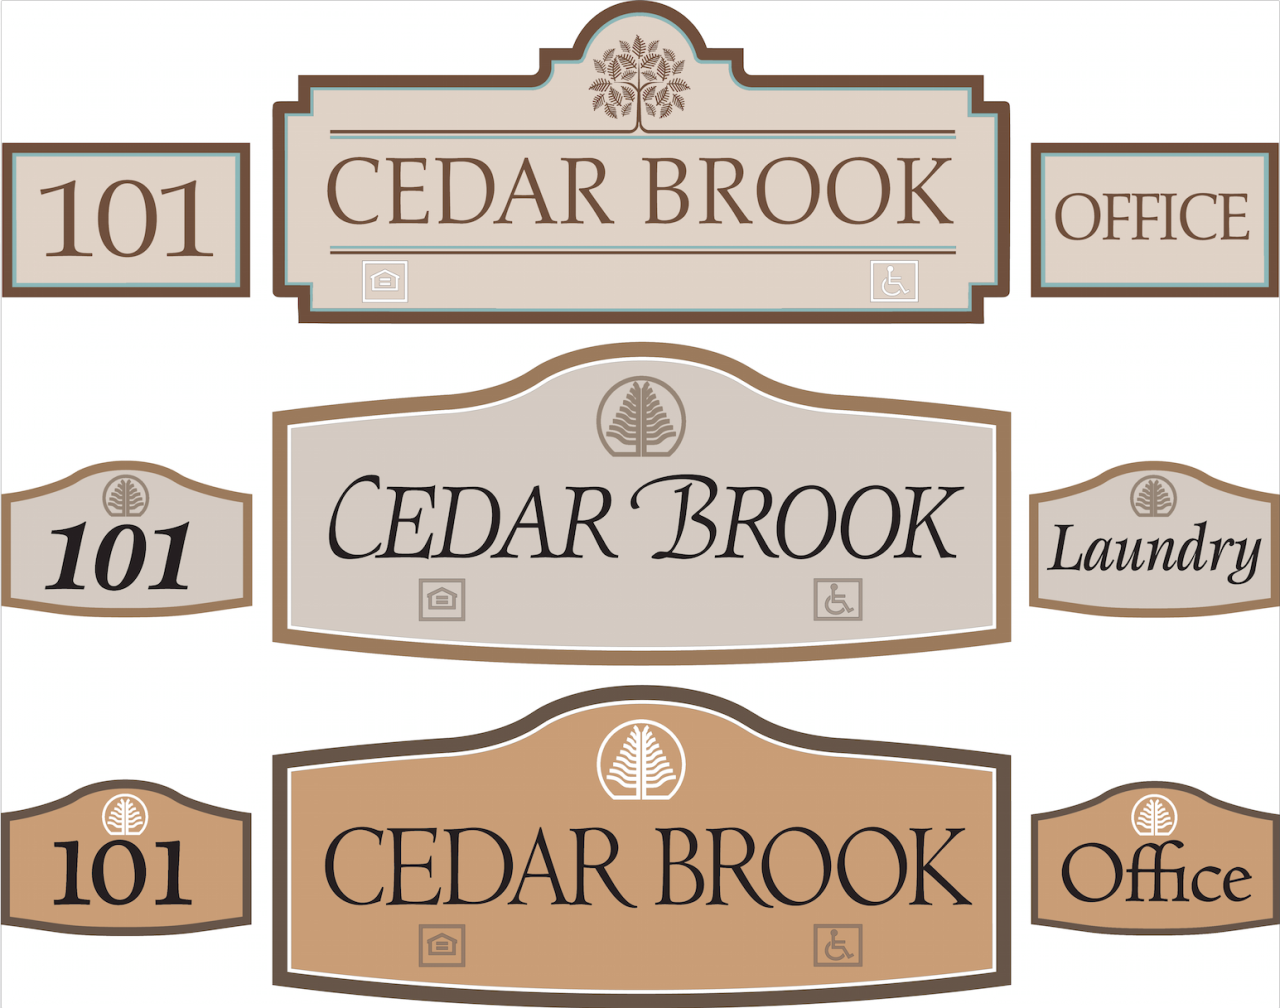 Custom outdoor sign design for Cedar Brook subdivision. Signs were routed in HDU.www.customoutdoorwoodensigns.com